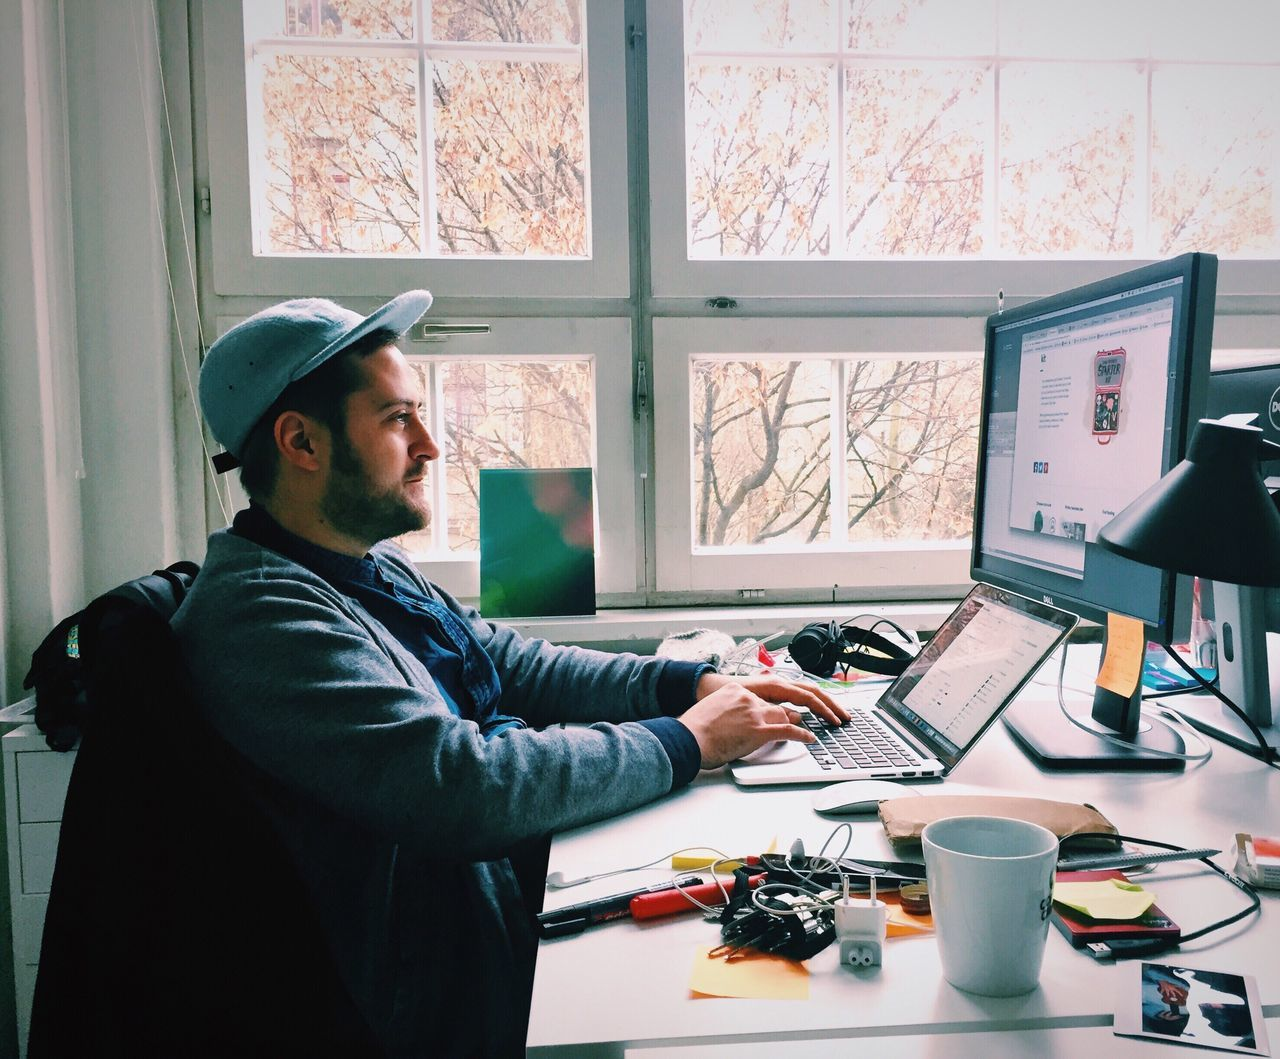 Focused designer using laptop in office Waist Up Window One Person Indoors  Desk Technology One Man Only Real People Working Men Workshop Only Men Adults Only Day Adult People Business Startup Designer  Office Working